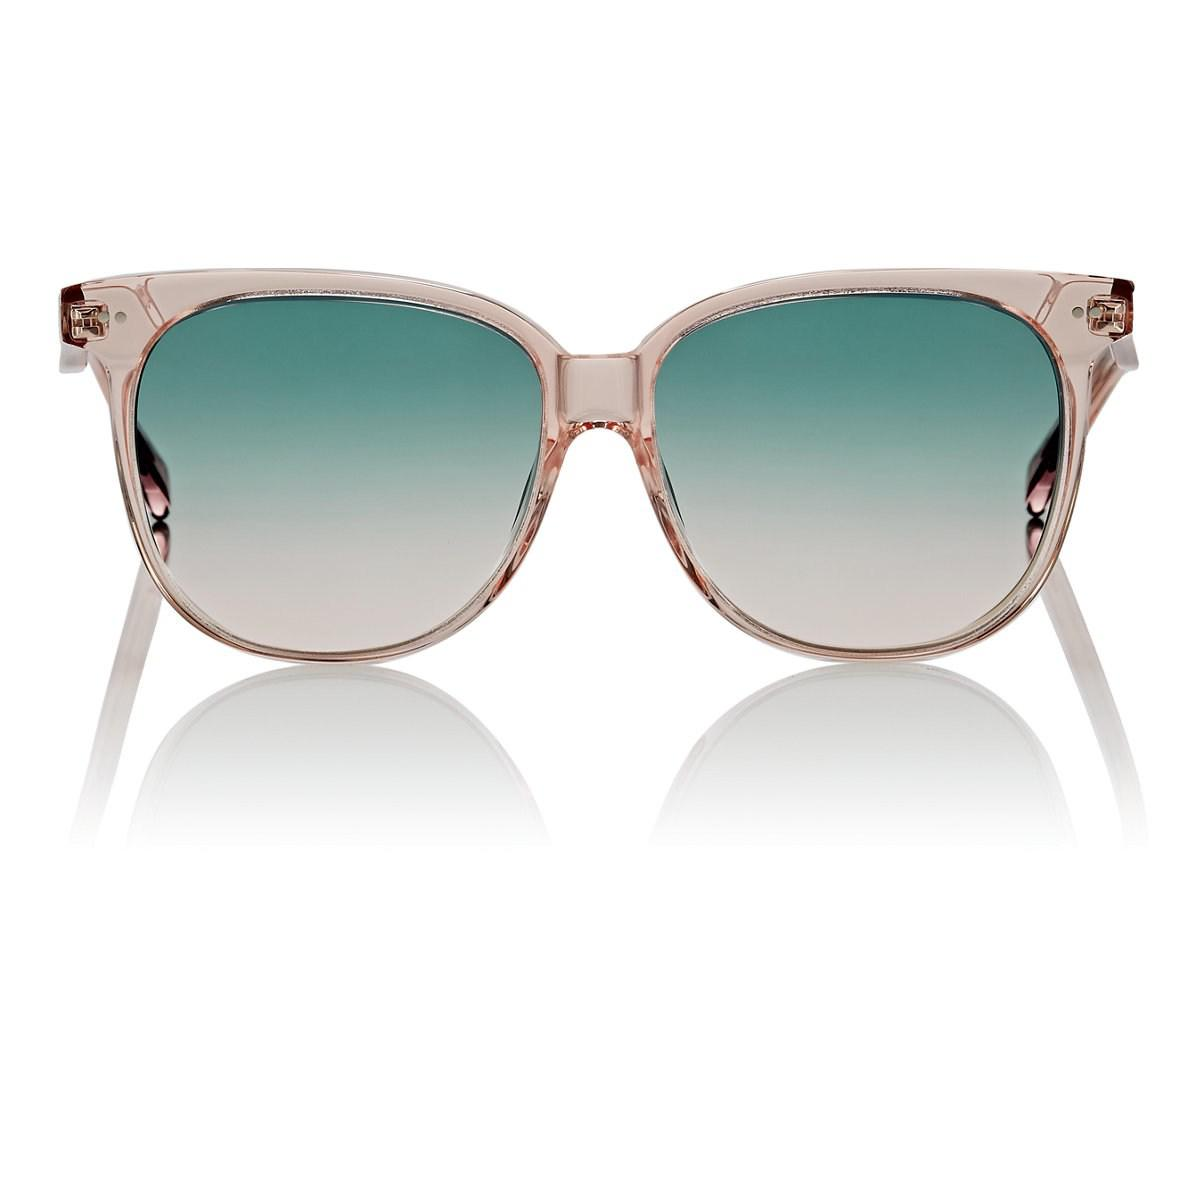 1b4bf8147f Céline. Women s Oversized Rounded Square Sunglasses